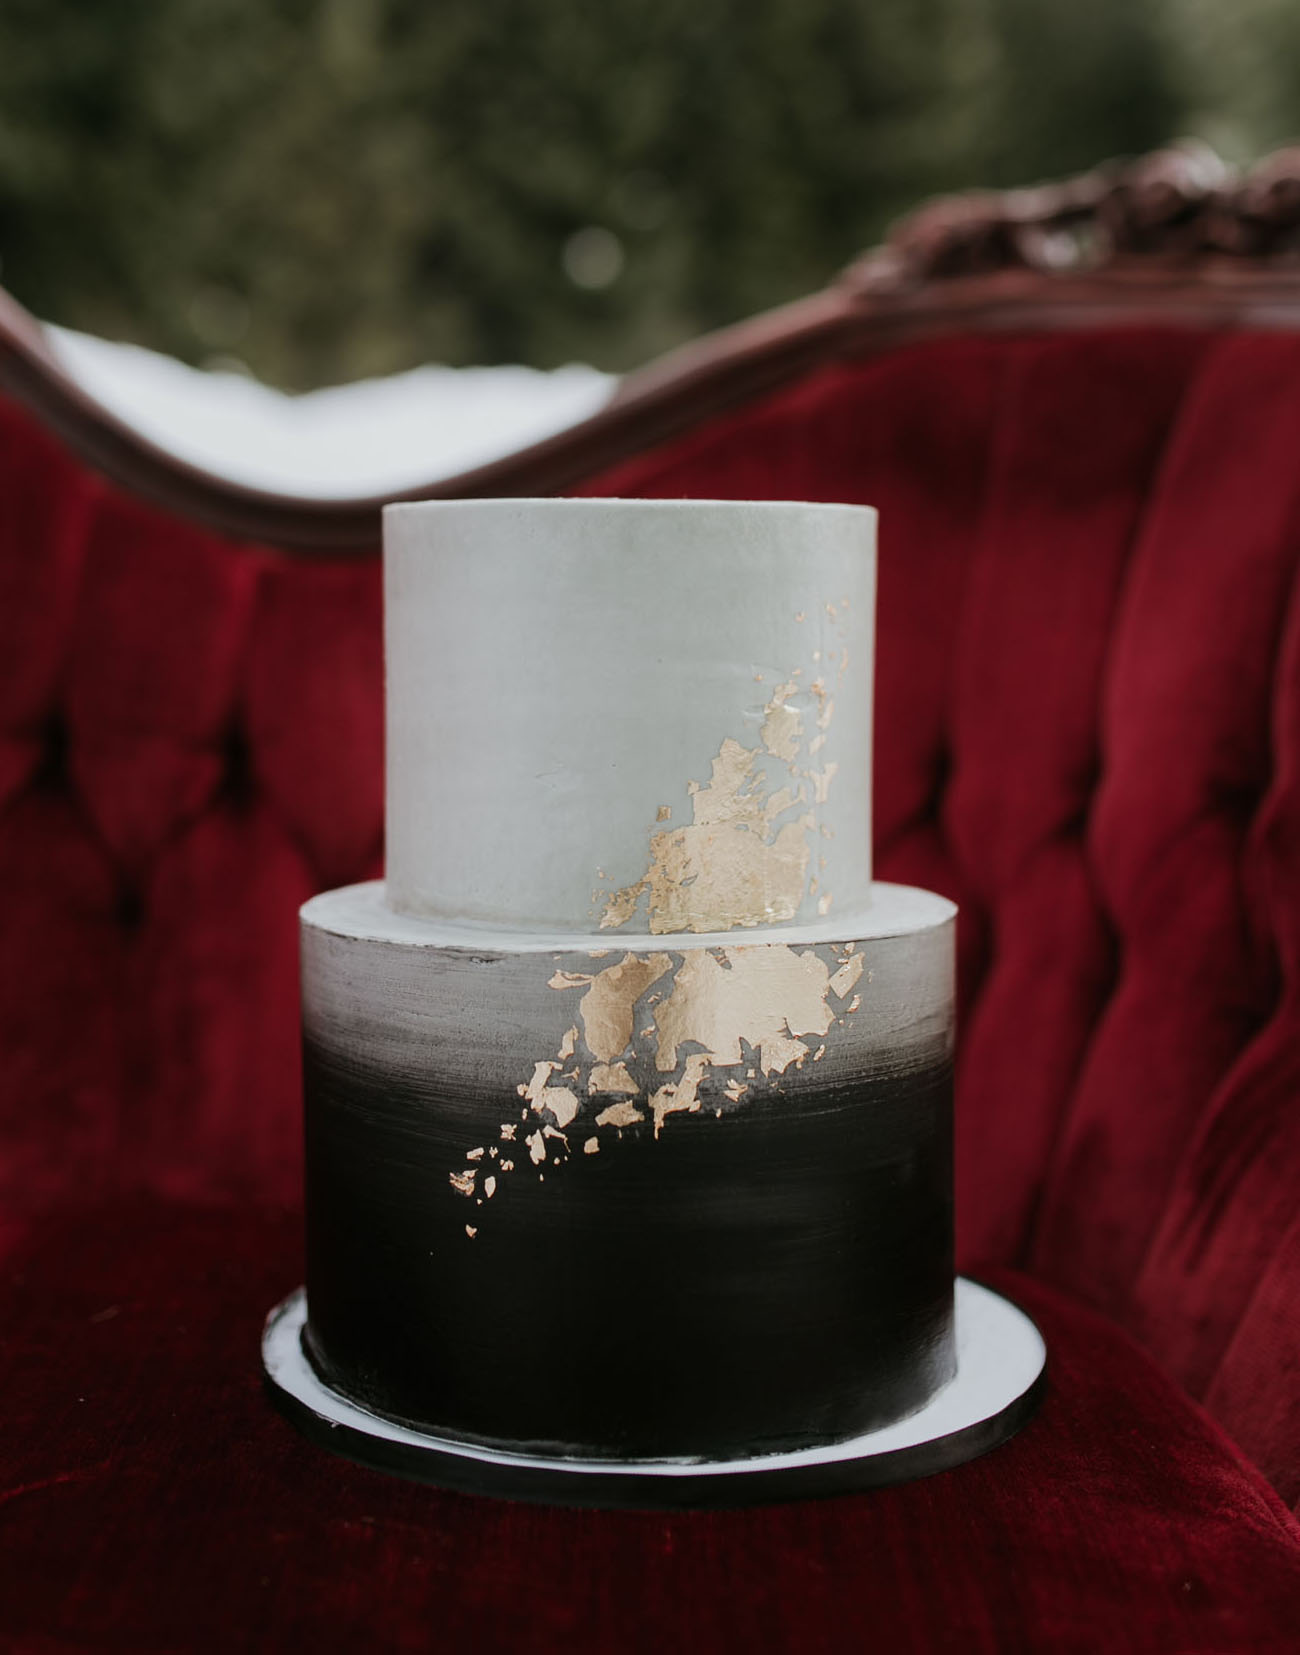 The wedding cake was an ombre one with a brushstroke texture and some gold leaf decor